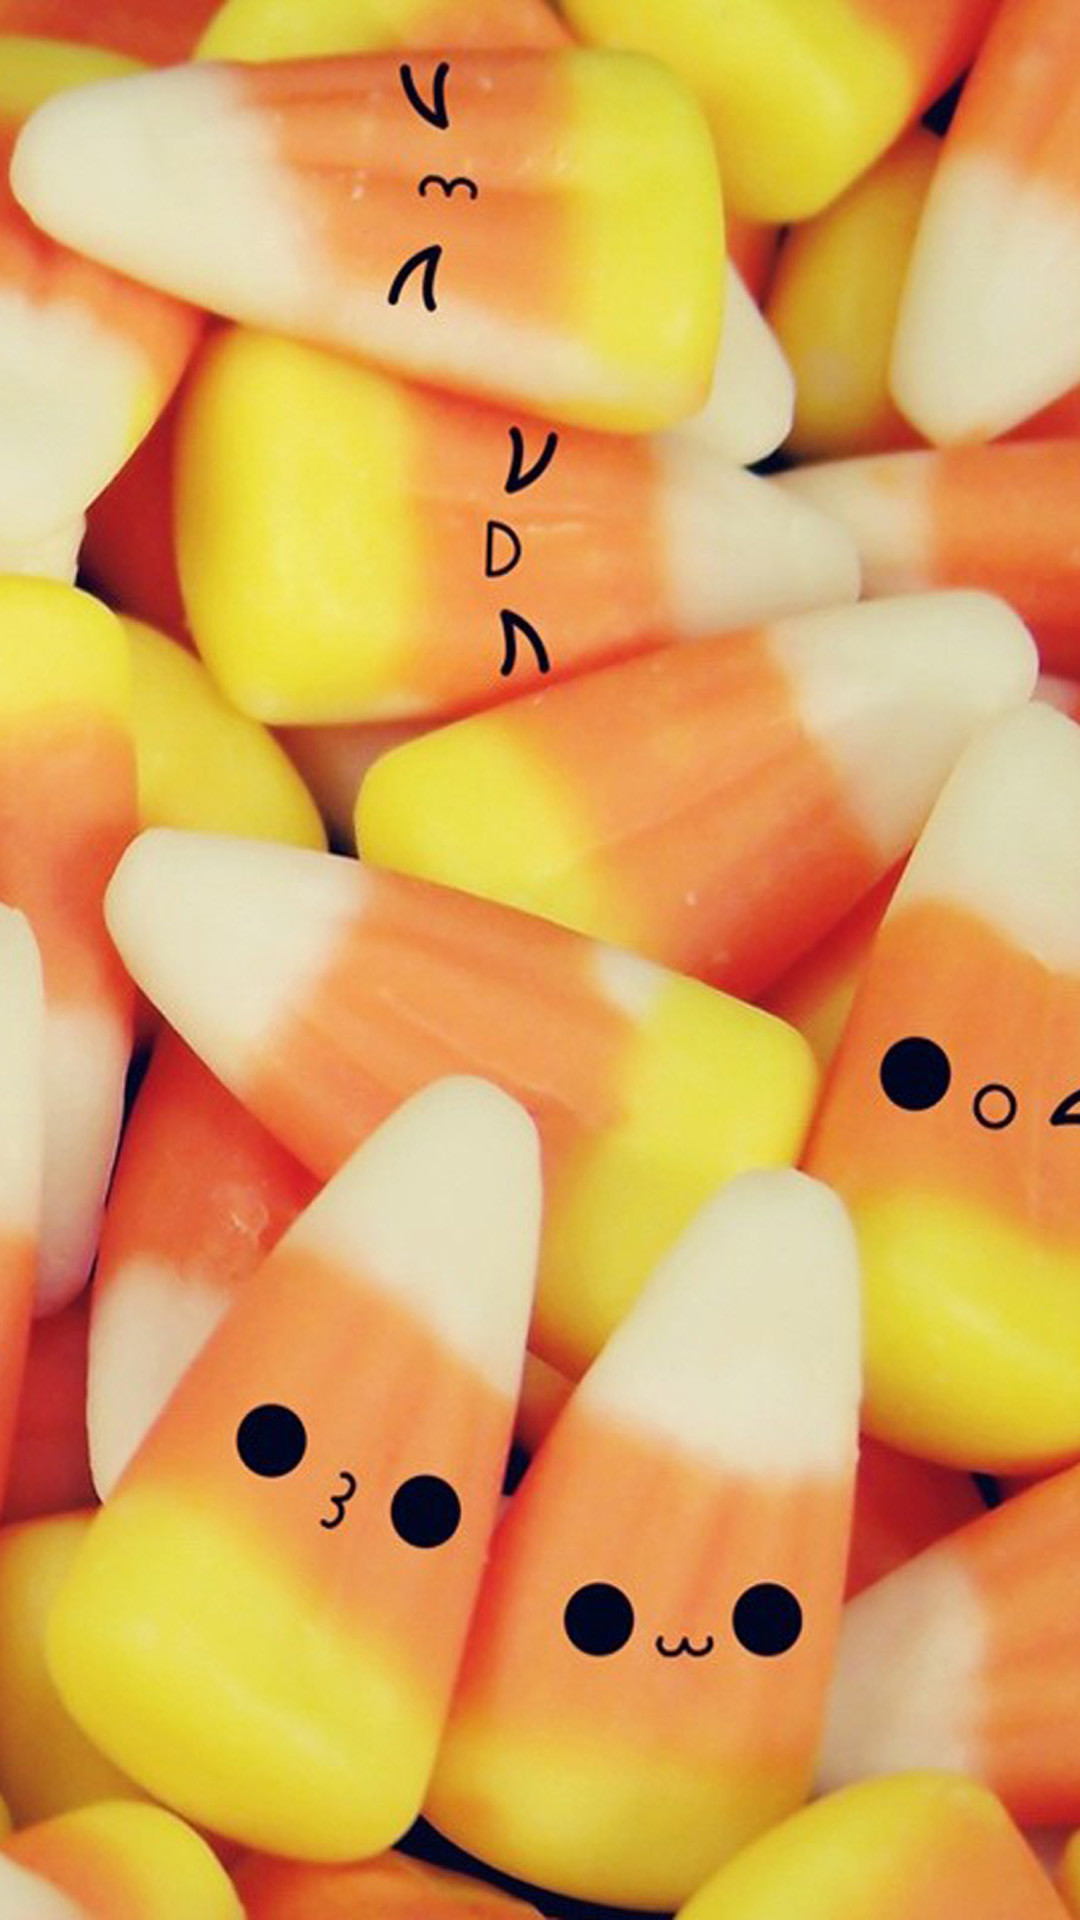 Cute Candy iphone 6 plus Wallpaper   iPhone 6 Plus Wallpapers HD